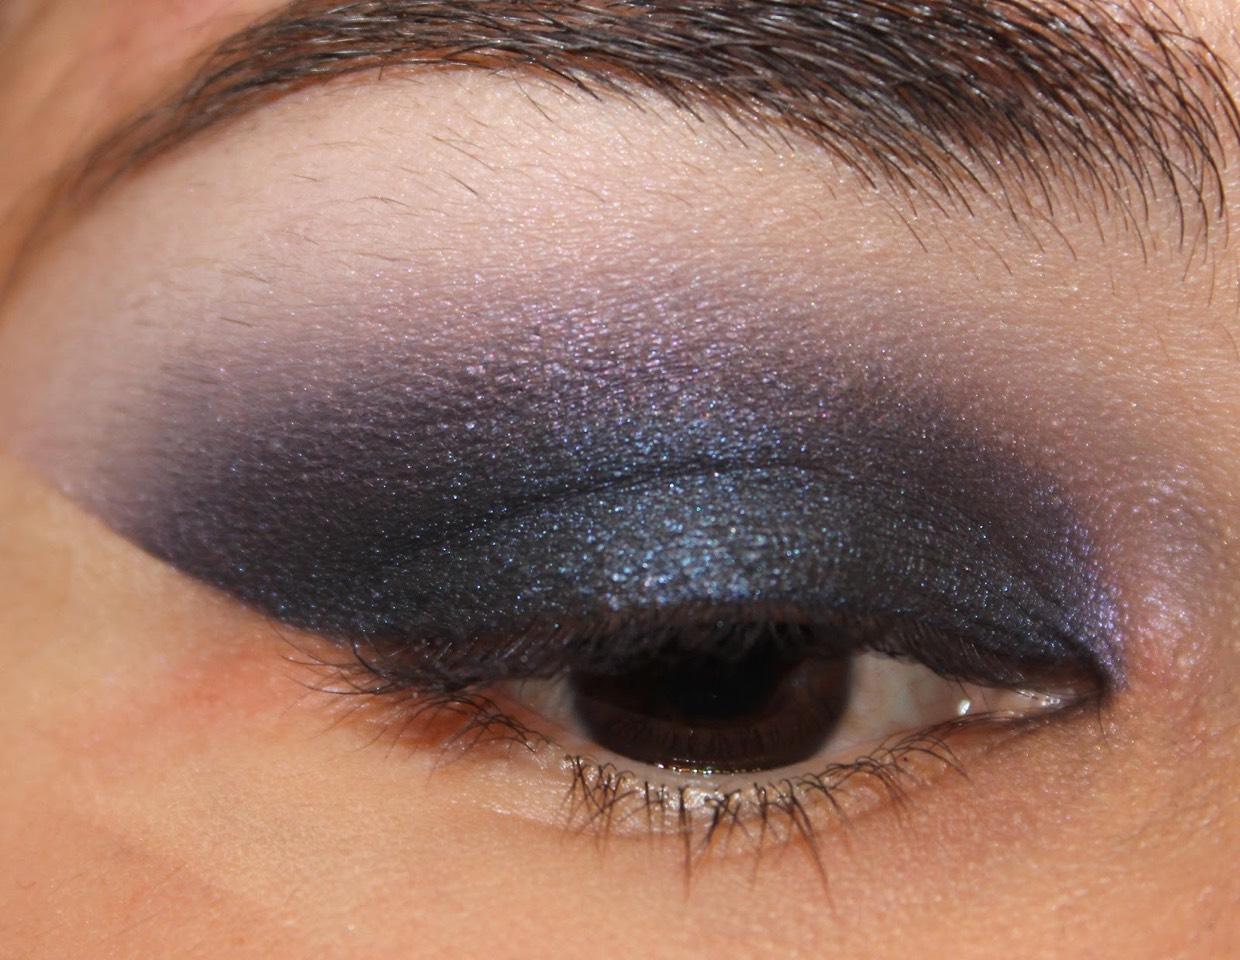 Put tape on the outside of your eye to make a crisp and clean line for eyeshadow and liner.